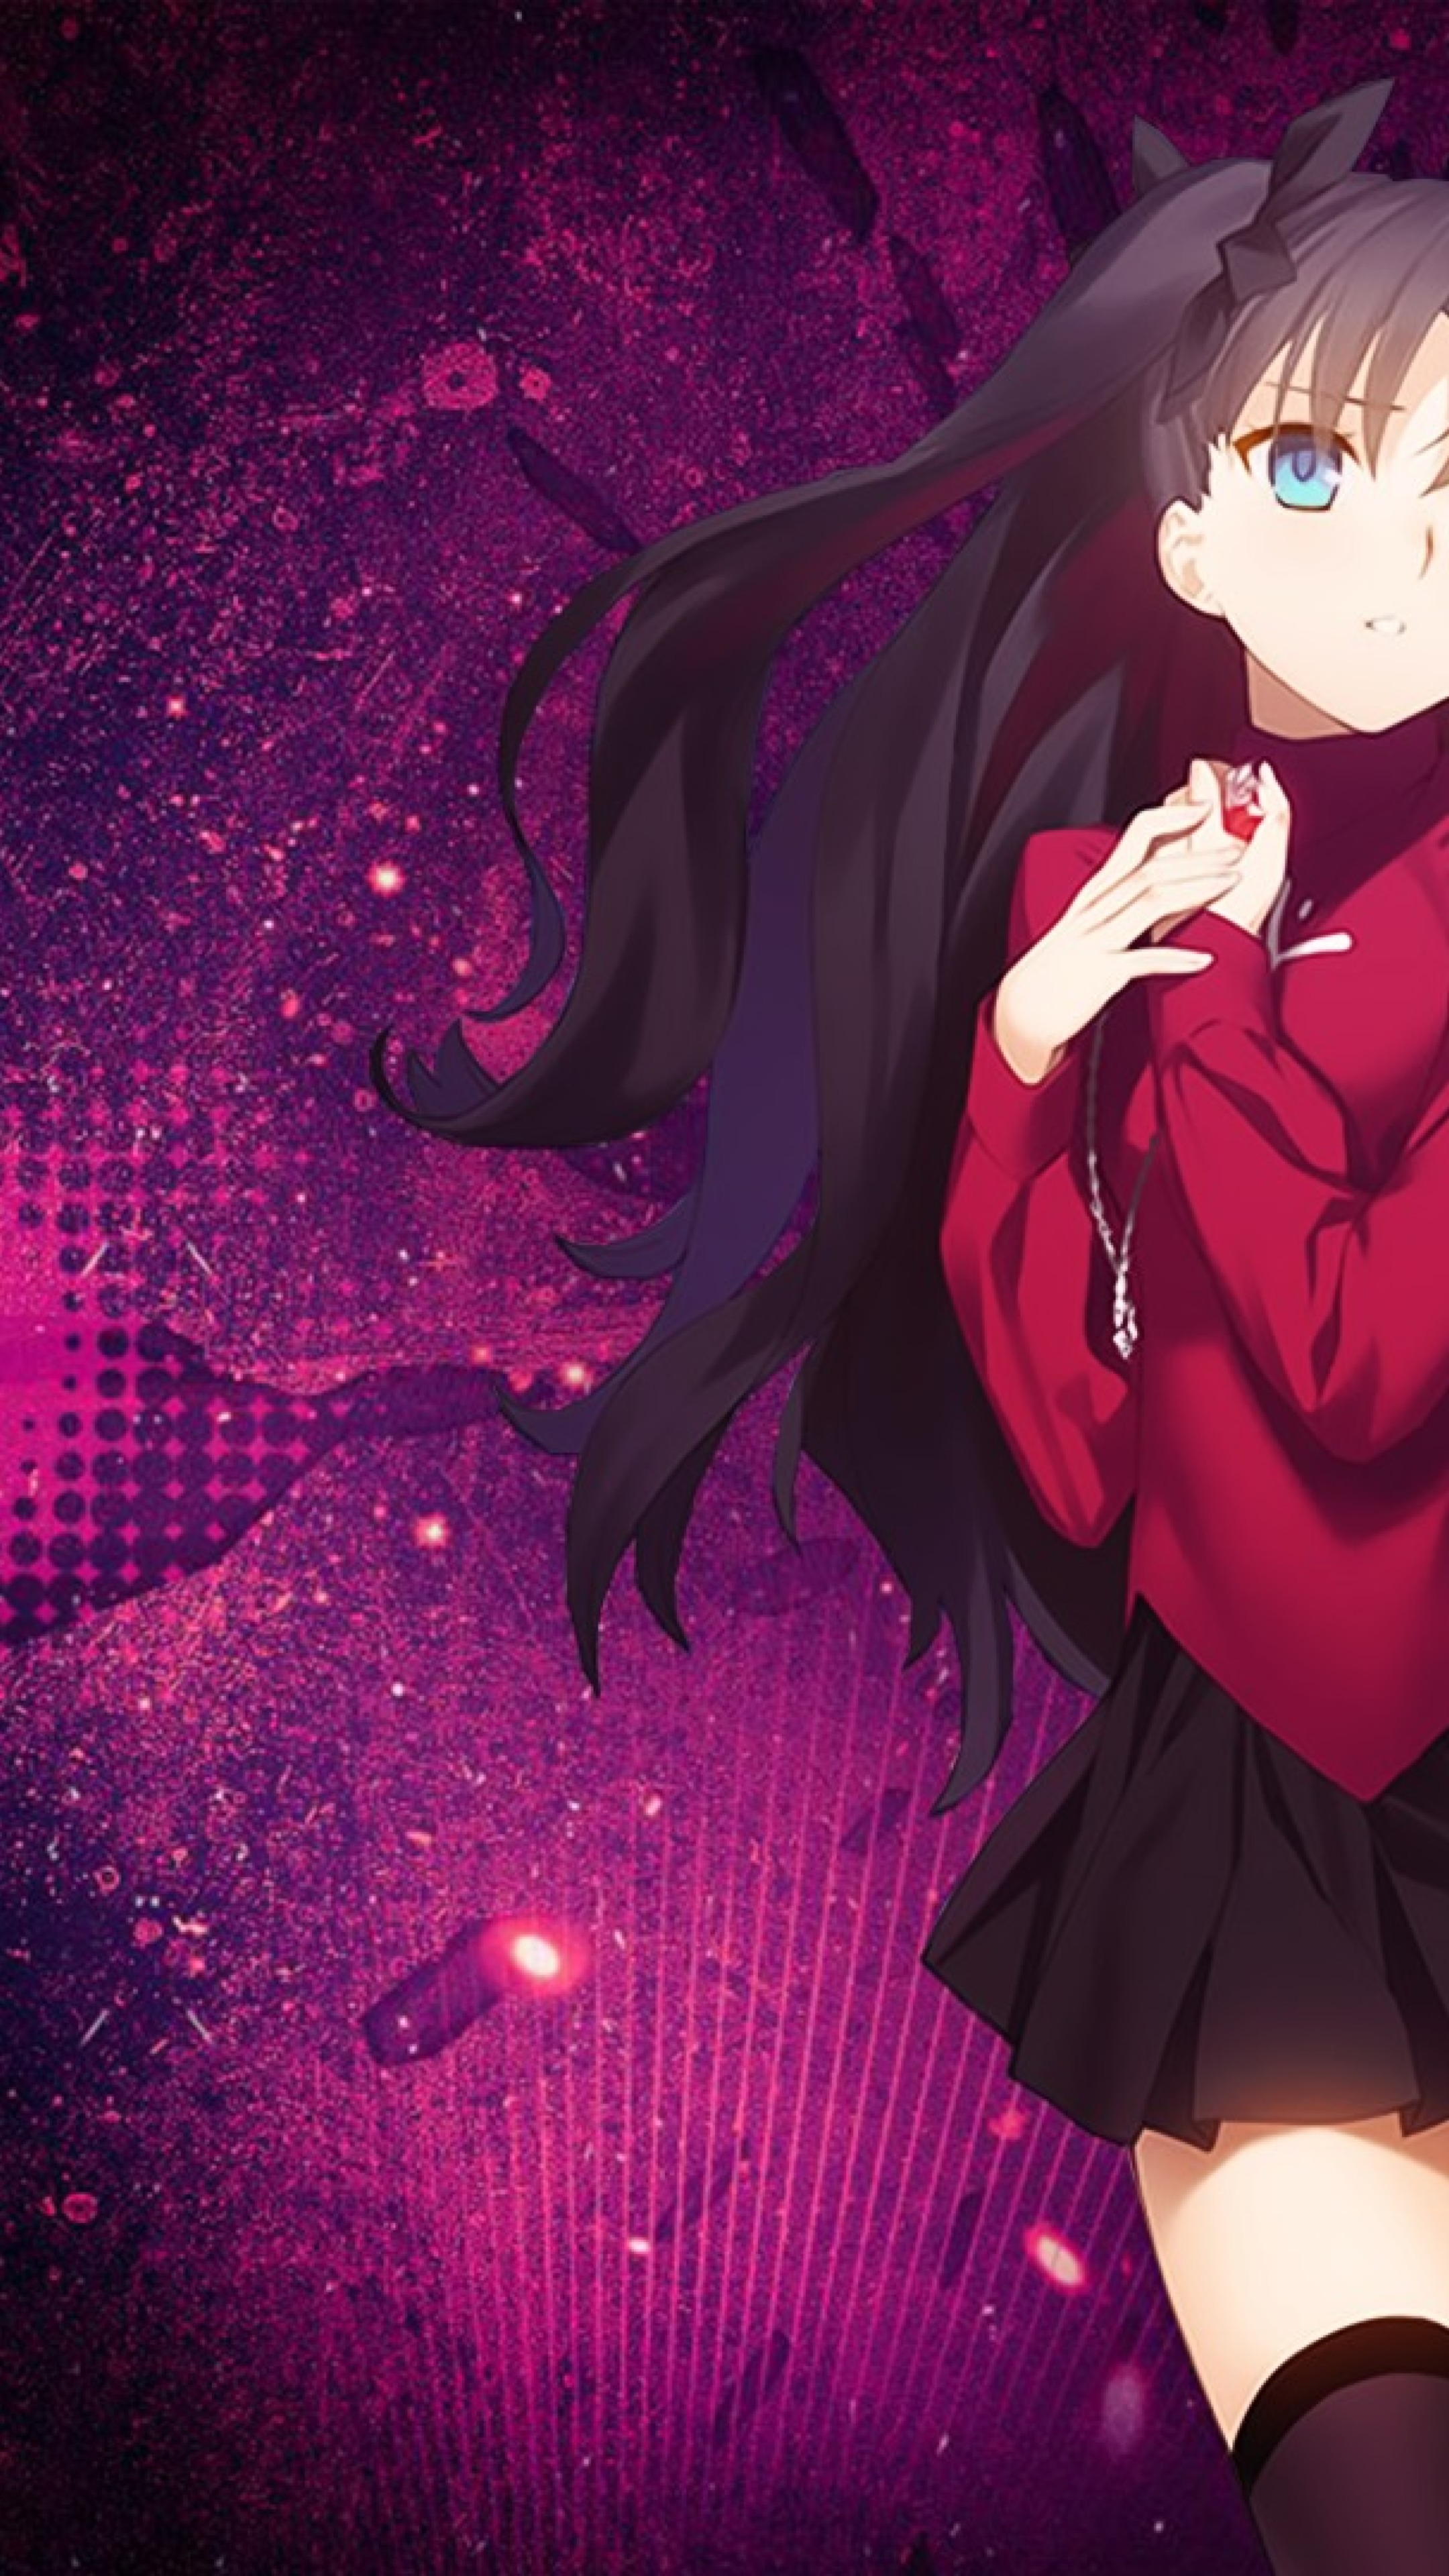 Download wallpapers Fate Stay Night, Tohsaka Rin, TYPE-MOON, portrait, main character, face